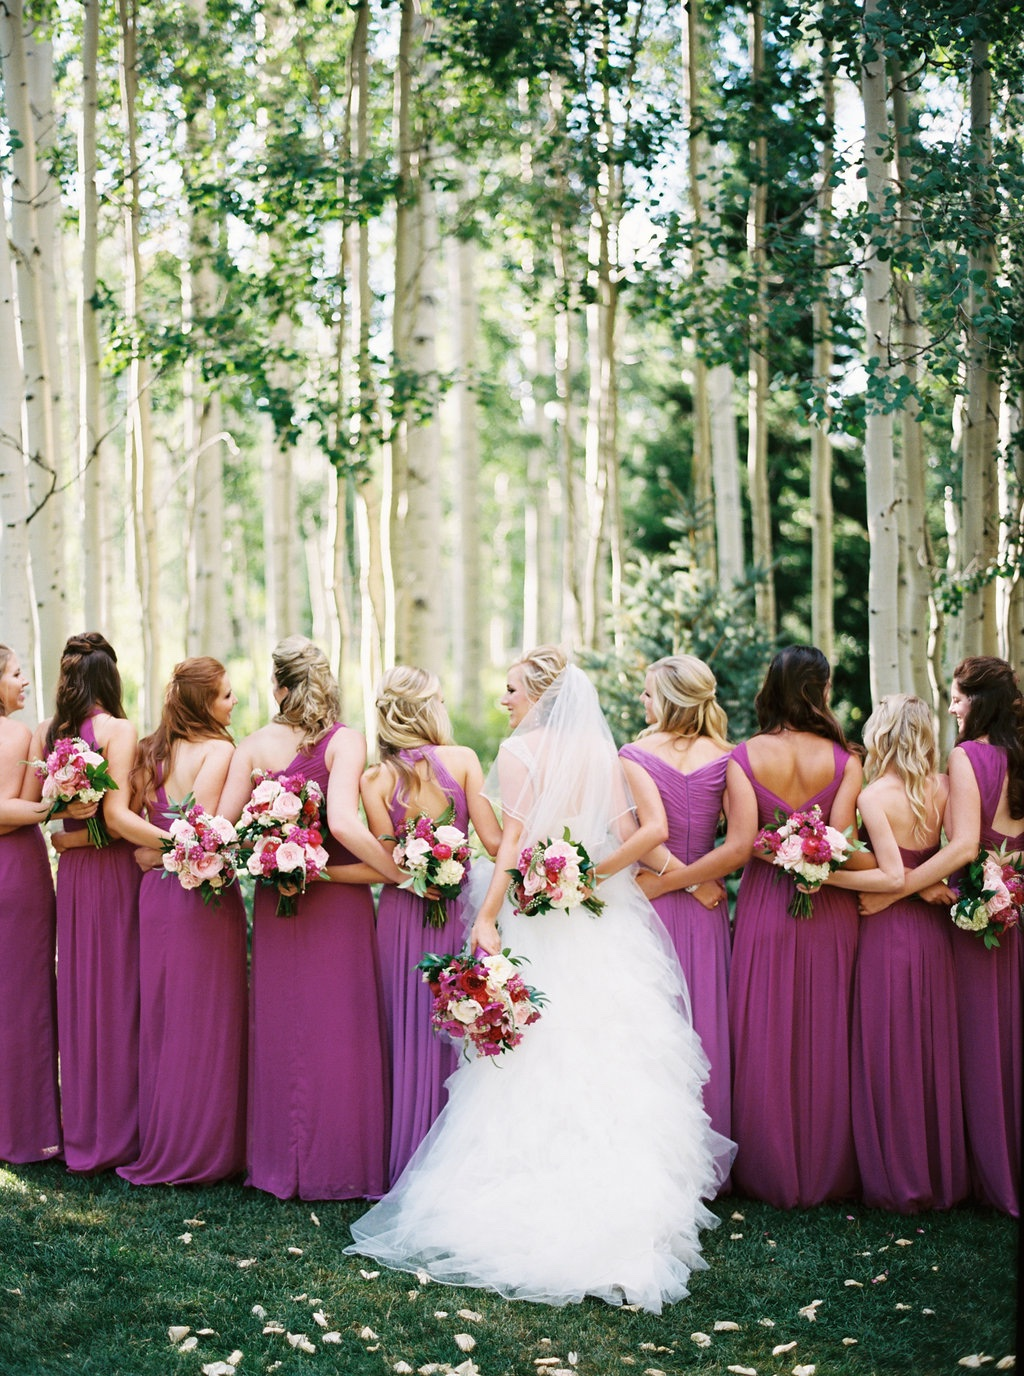 fuchsia bridesmaid dresses, fuchsia wedding flower ideas, berry wedding flower ideas calie rose